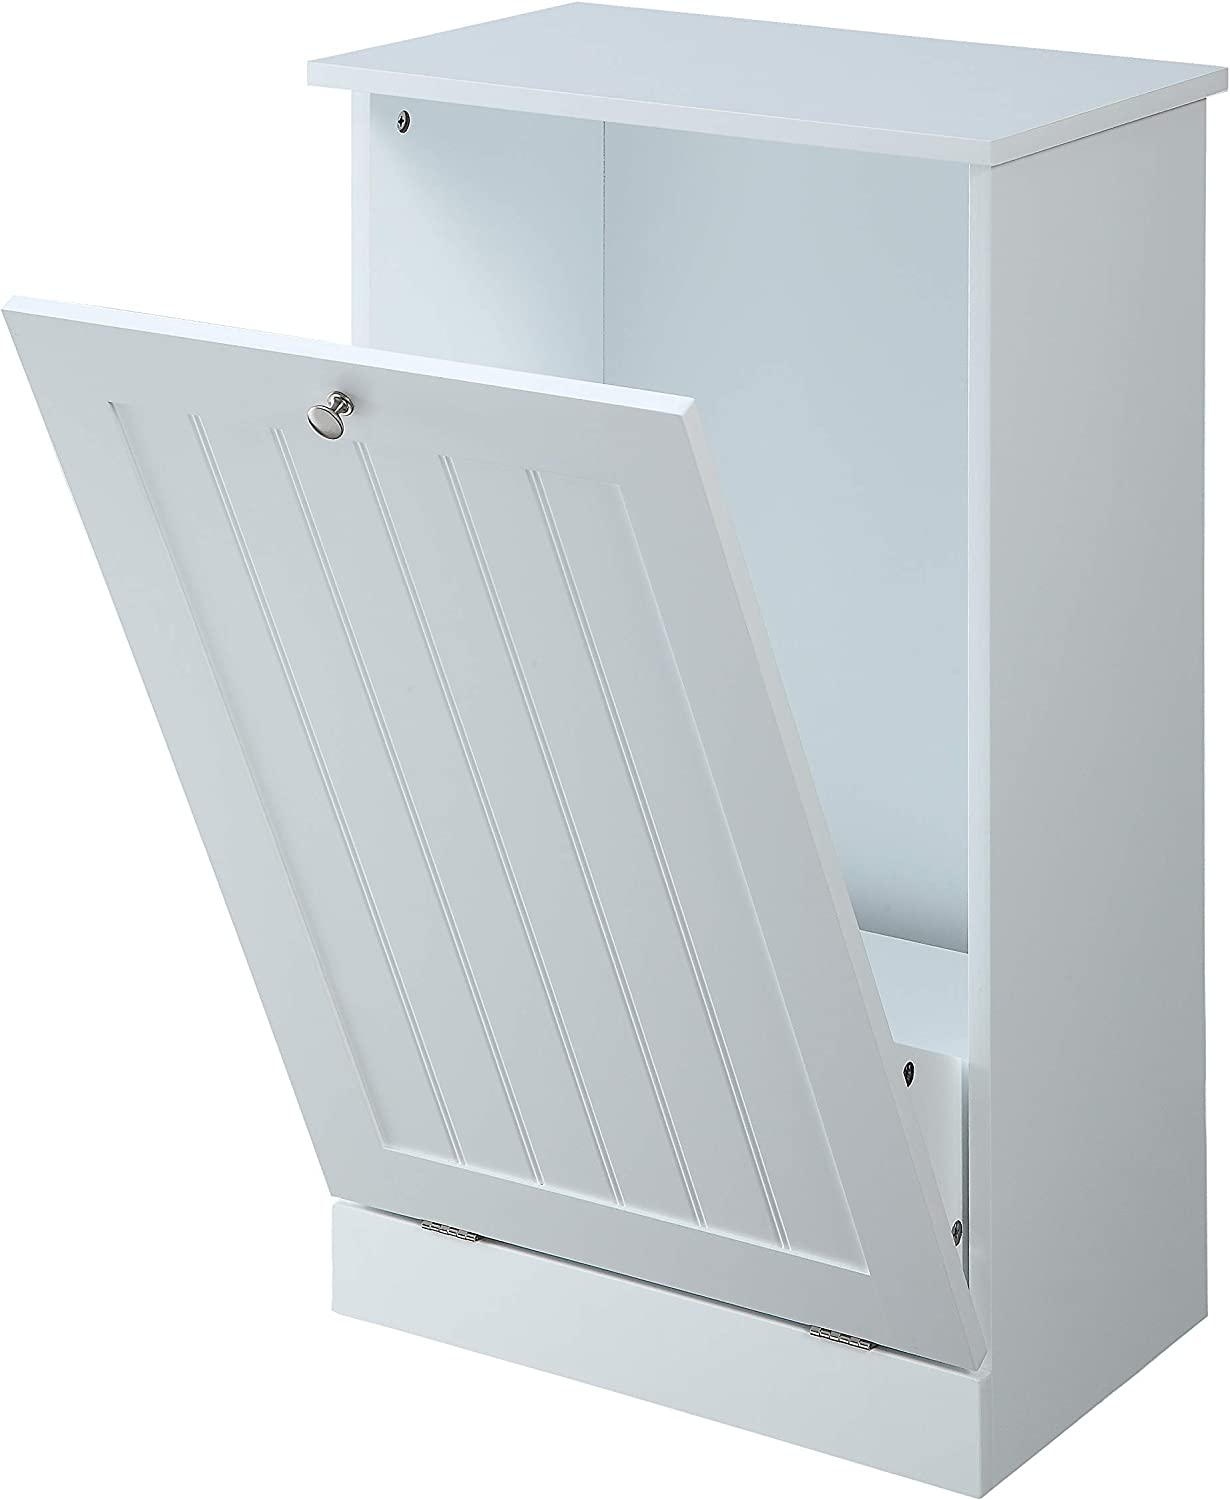 Tilt Out Trash Bin Cabinet or Spring new work one after another Free Shipping New Laundry Hamper Northwood Callig by